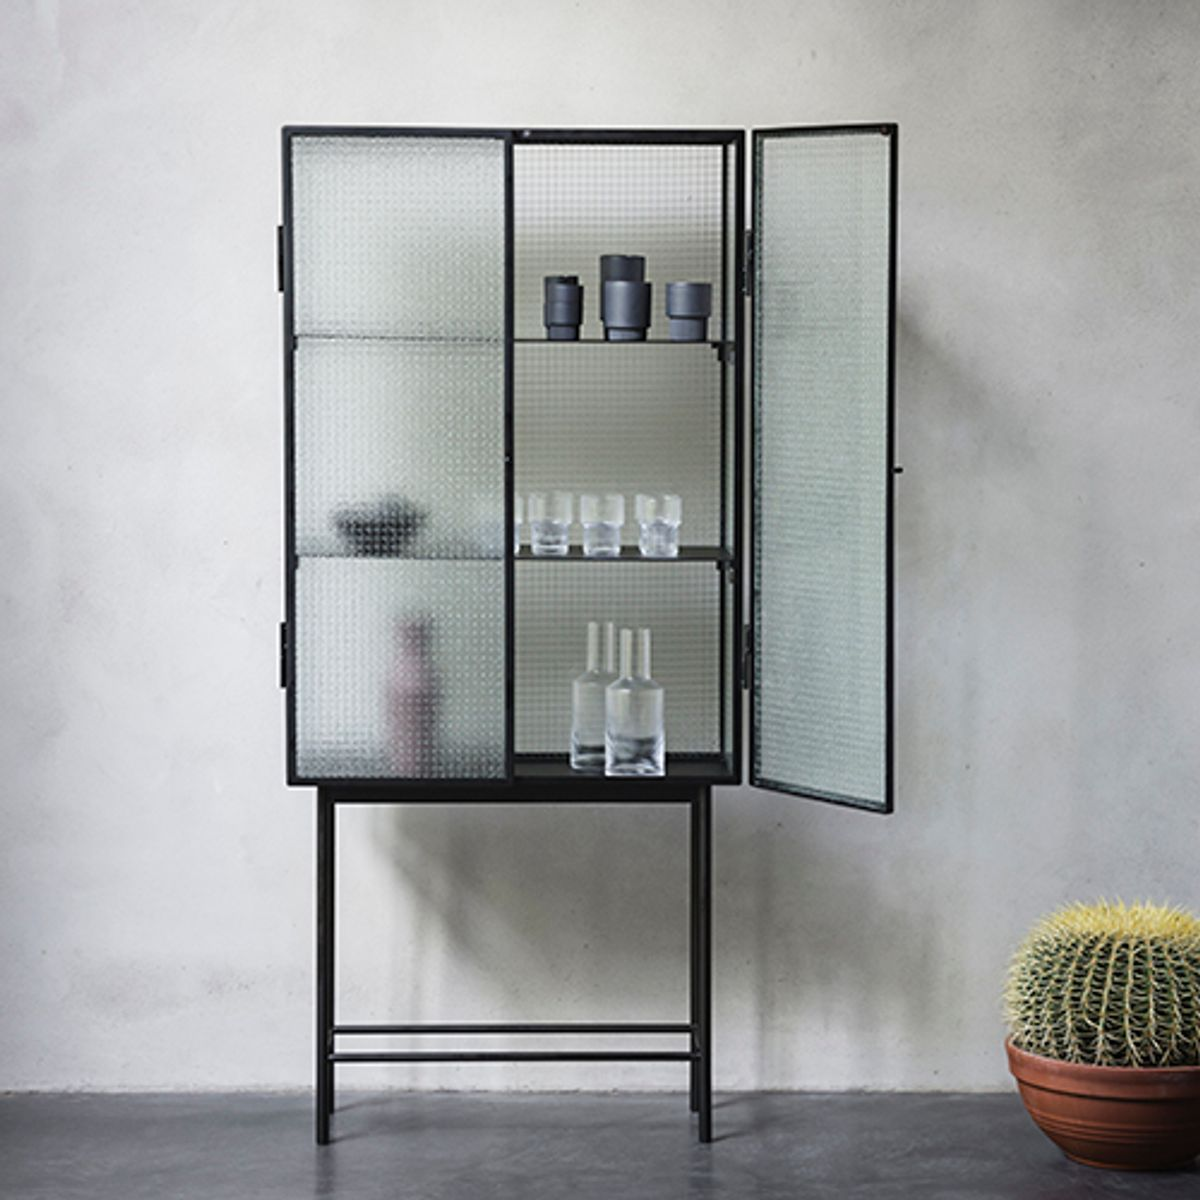 vitrine vaisselier en verre arm et m tal noir 2 tag res haze ferm living decoclico. Black Bedroom Furniture Sets. Home Design Ideas